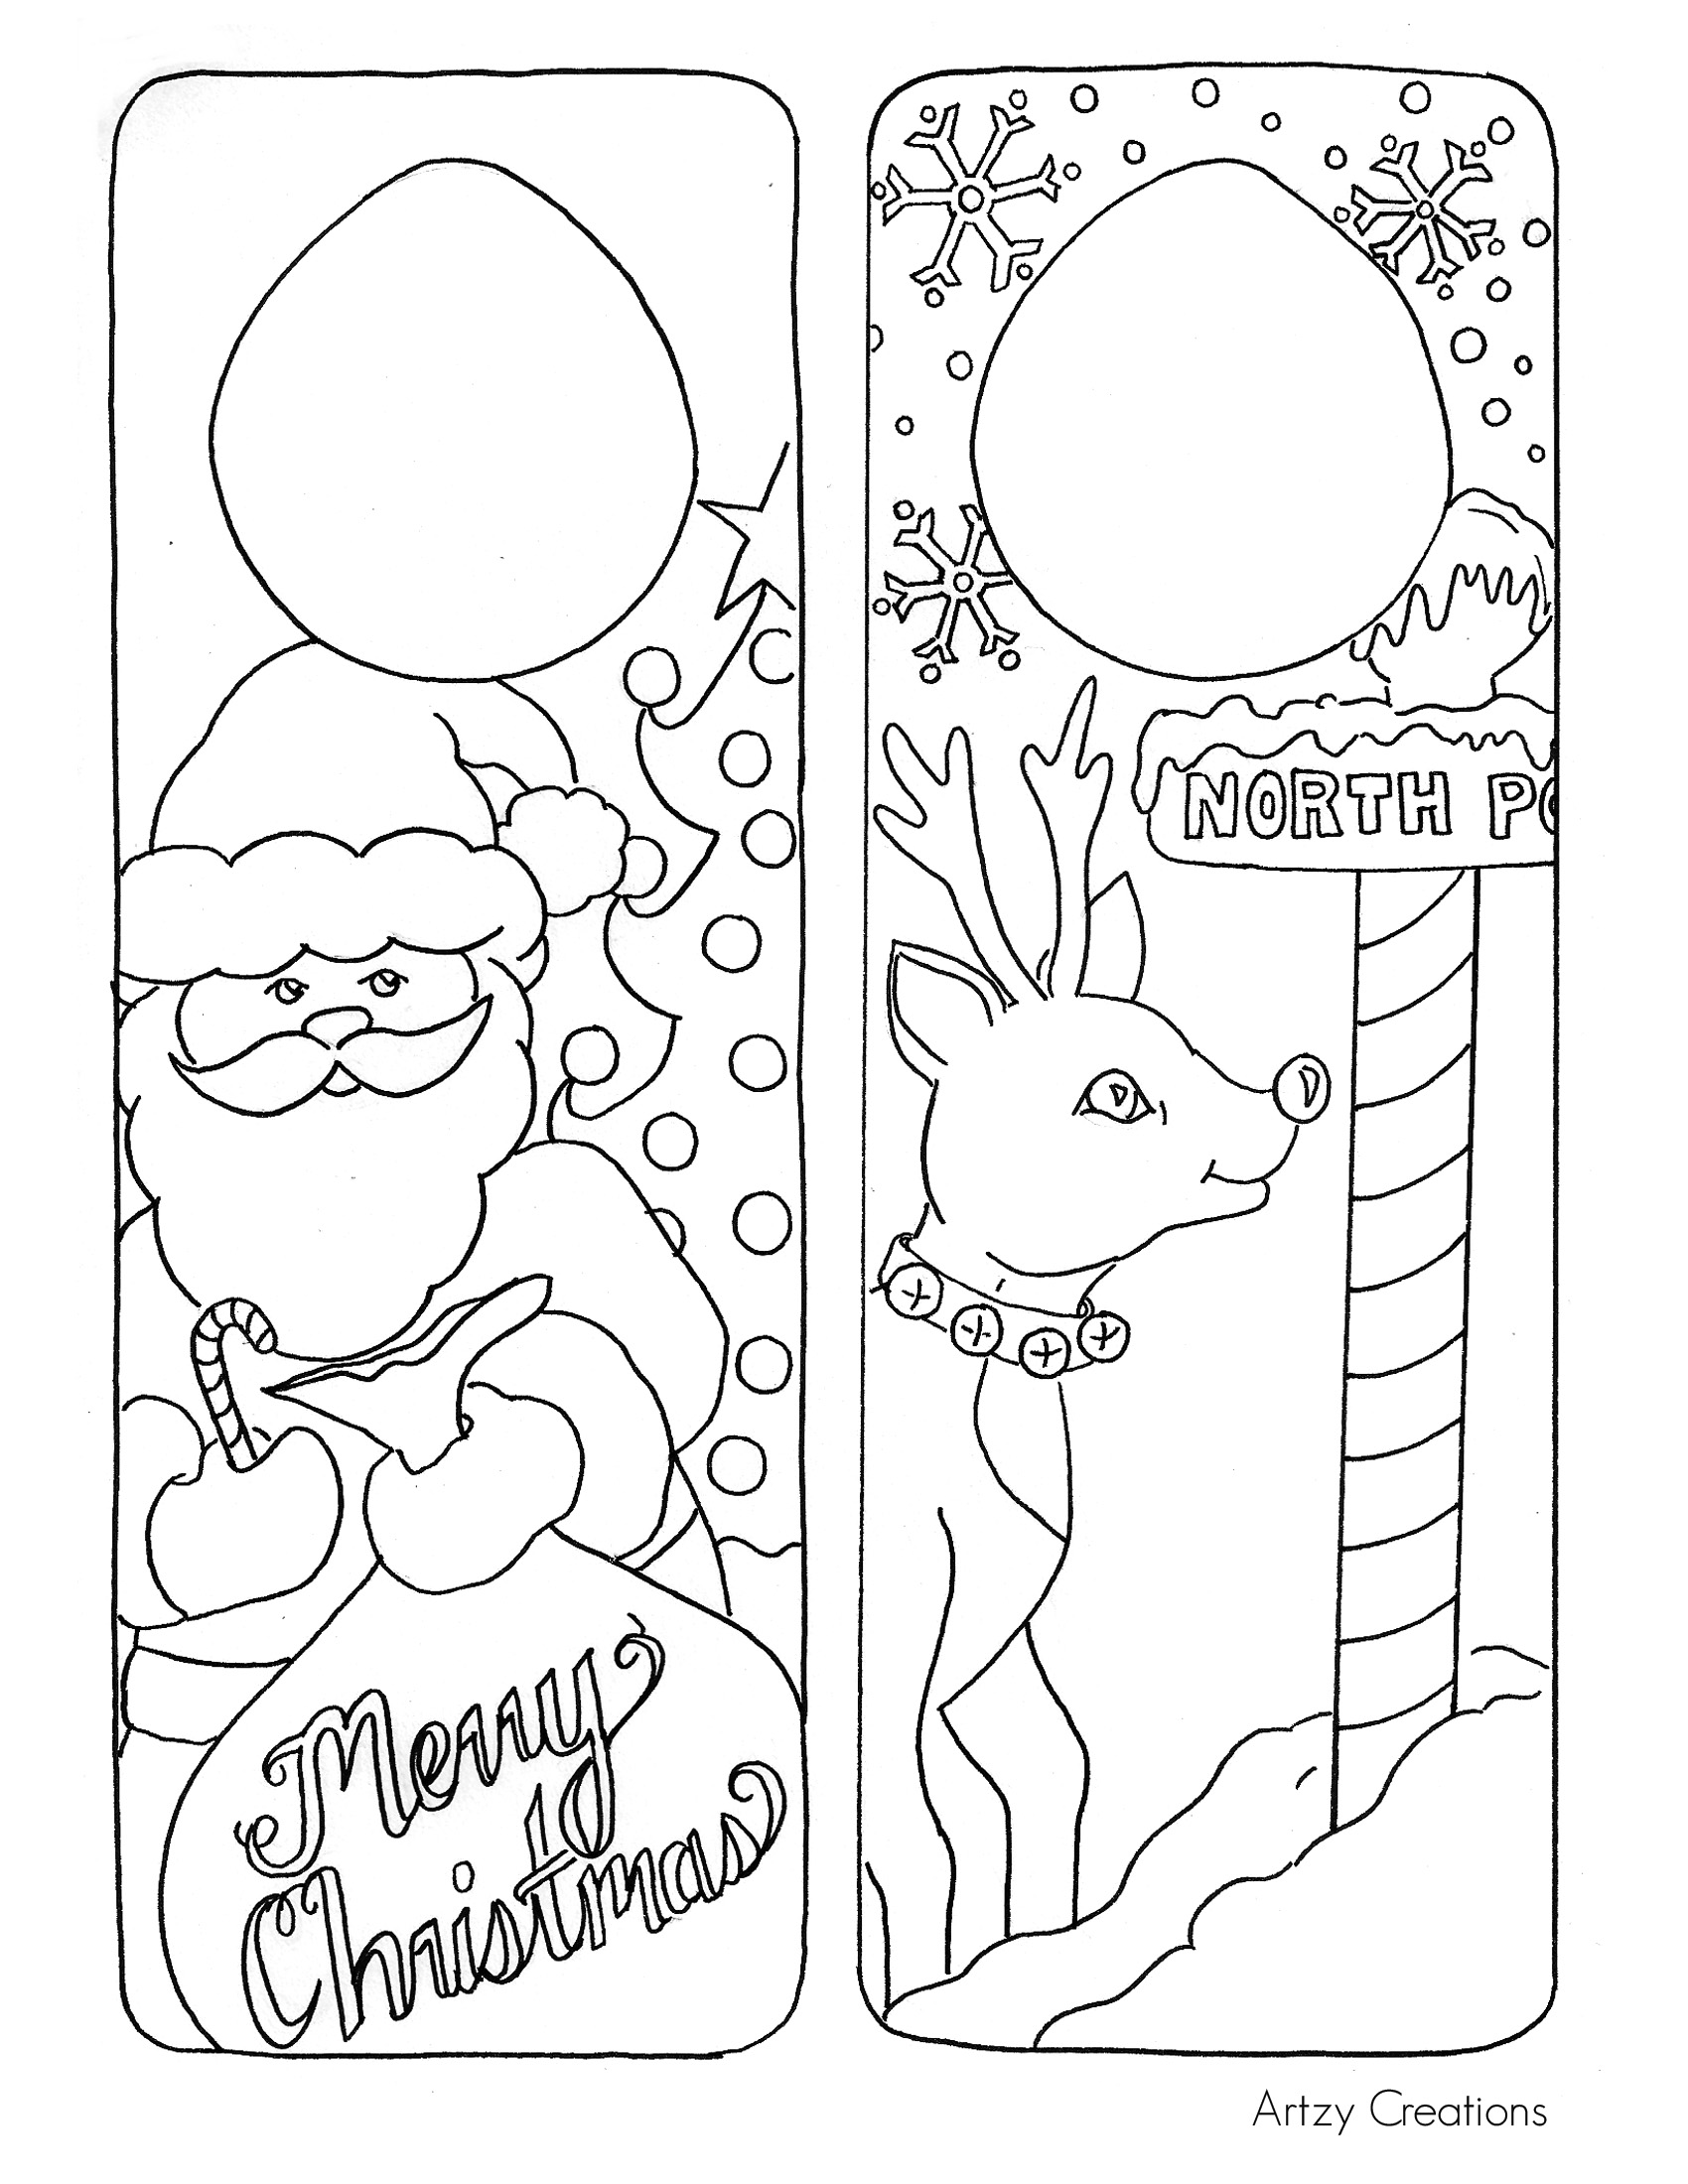 Christmas Coloring Pages And Activities With Page Door Hanger Printables The 36th AVENUE